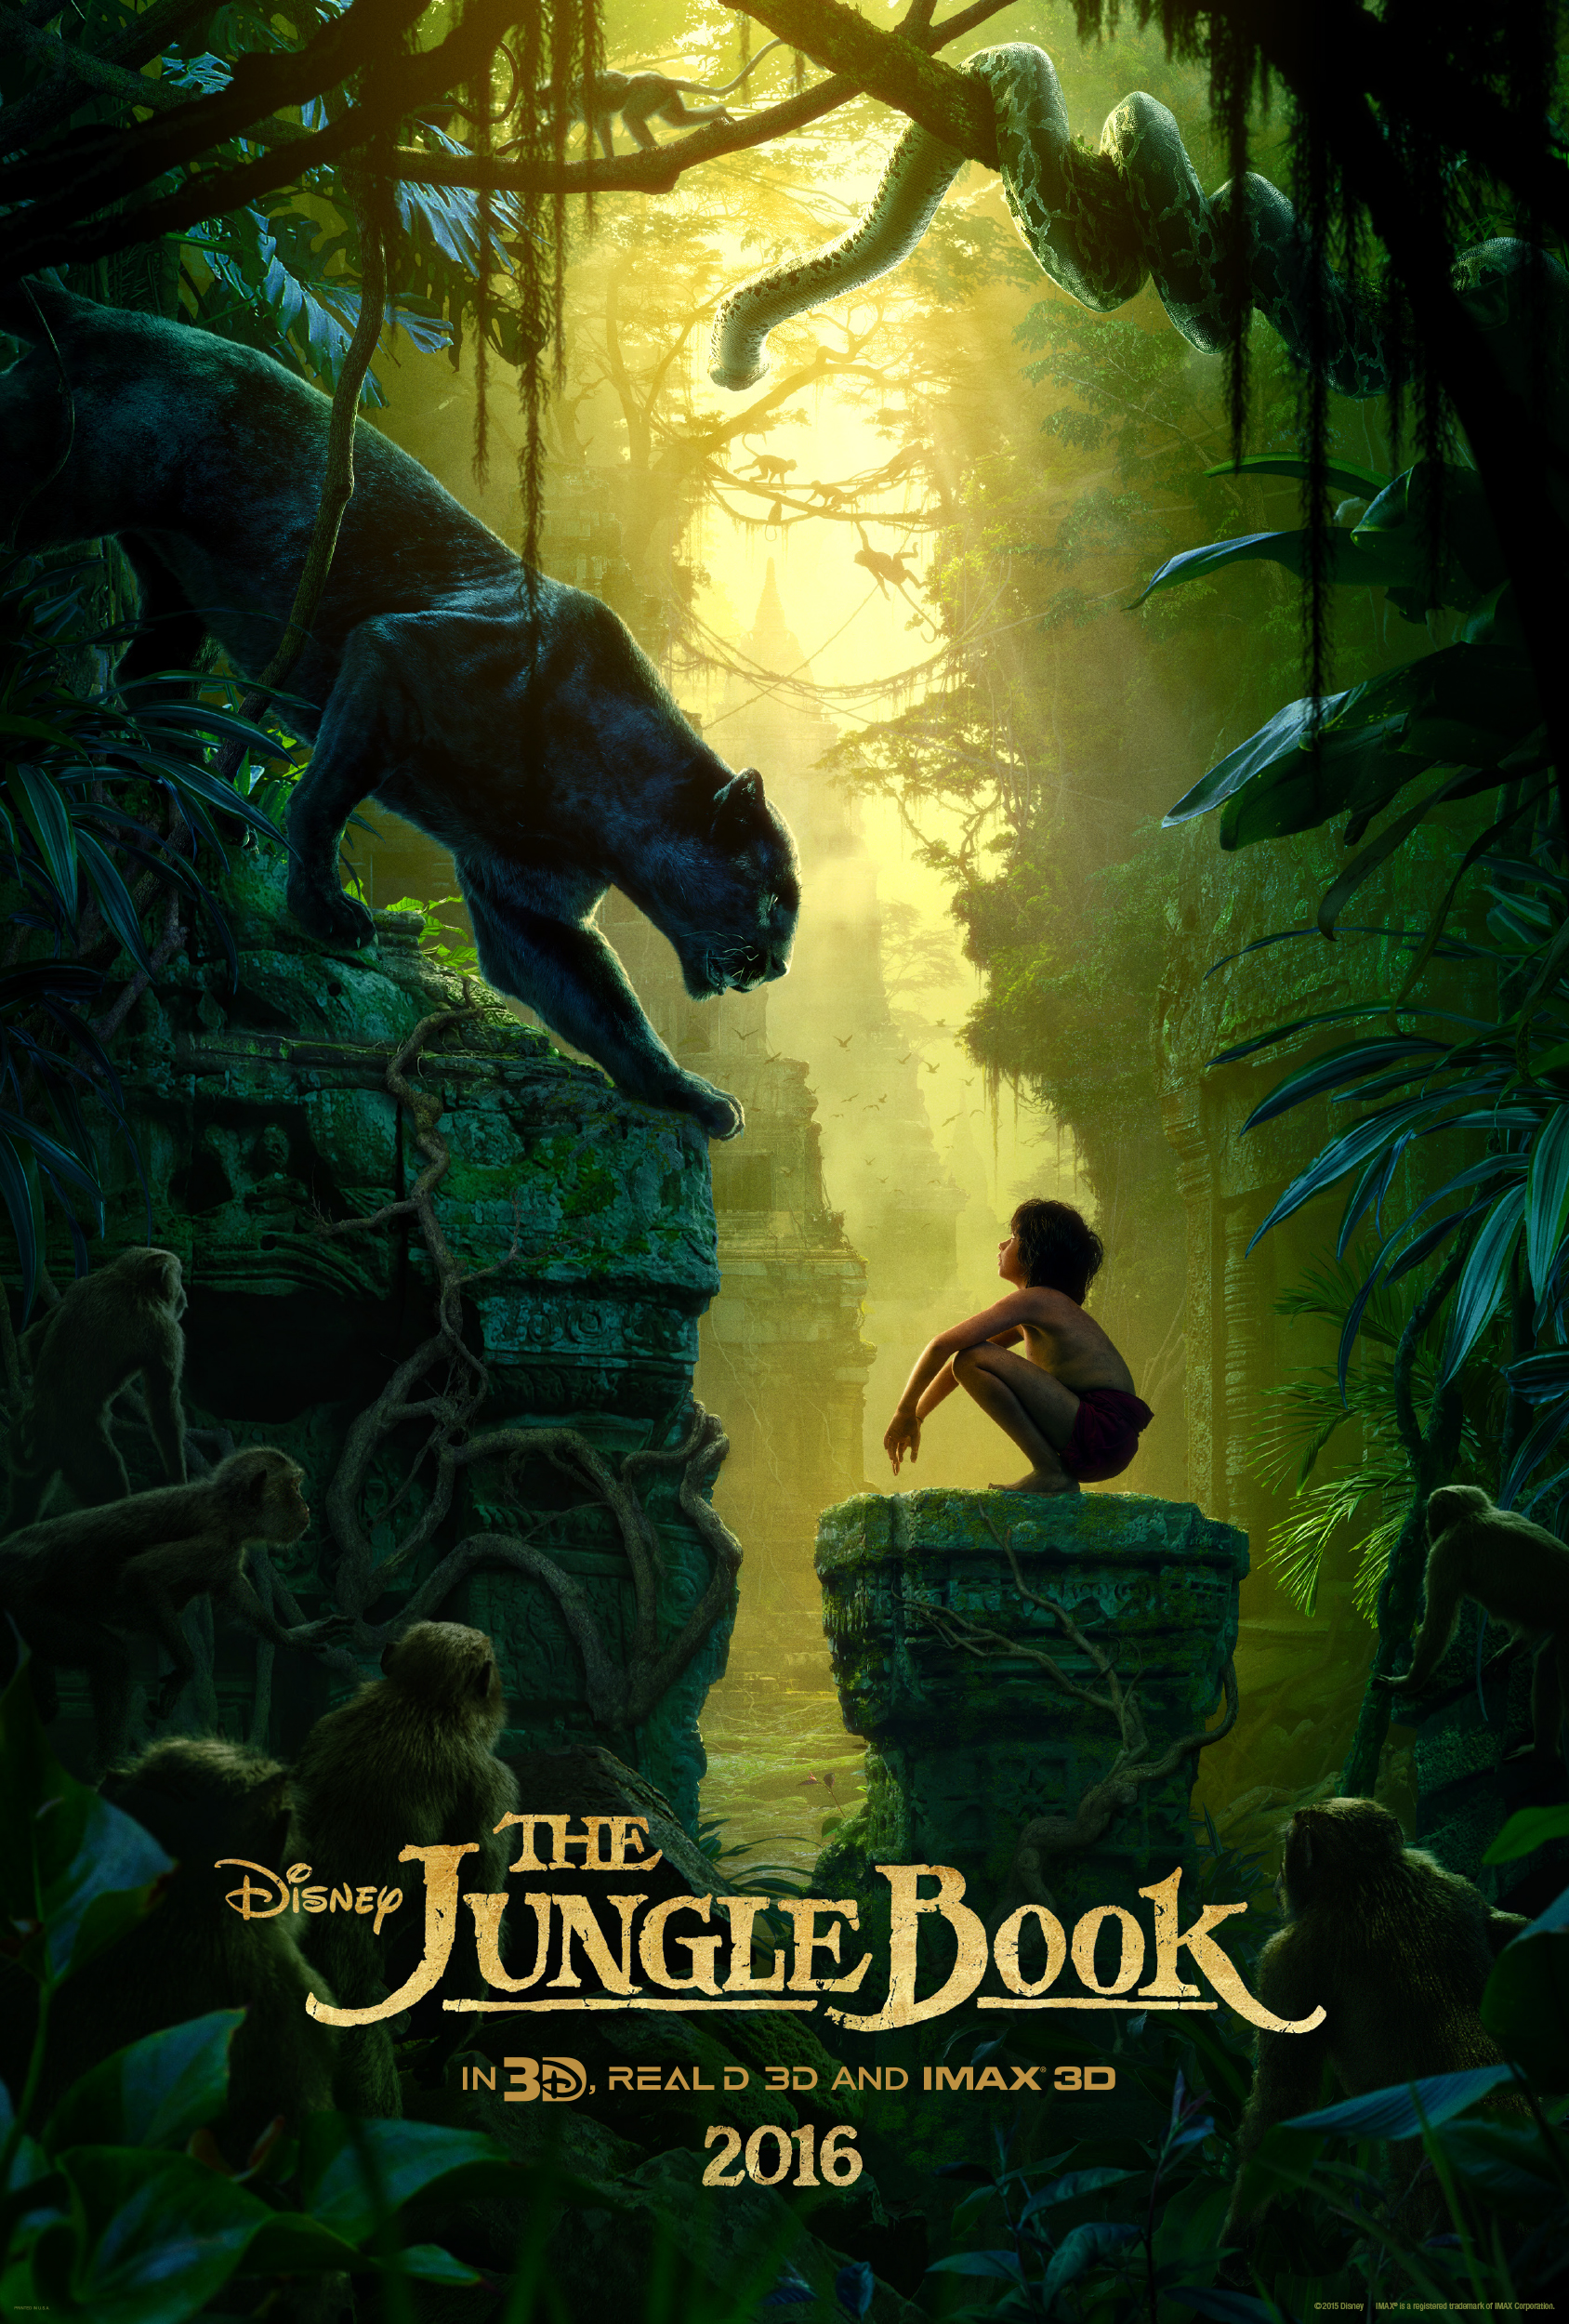 how to watch jungle book 2016 on torrents